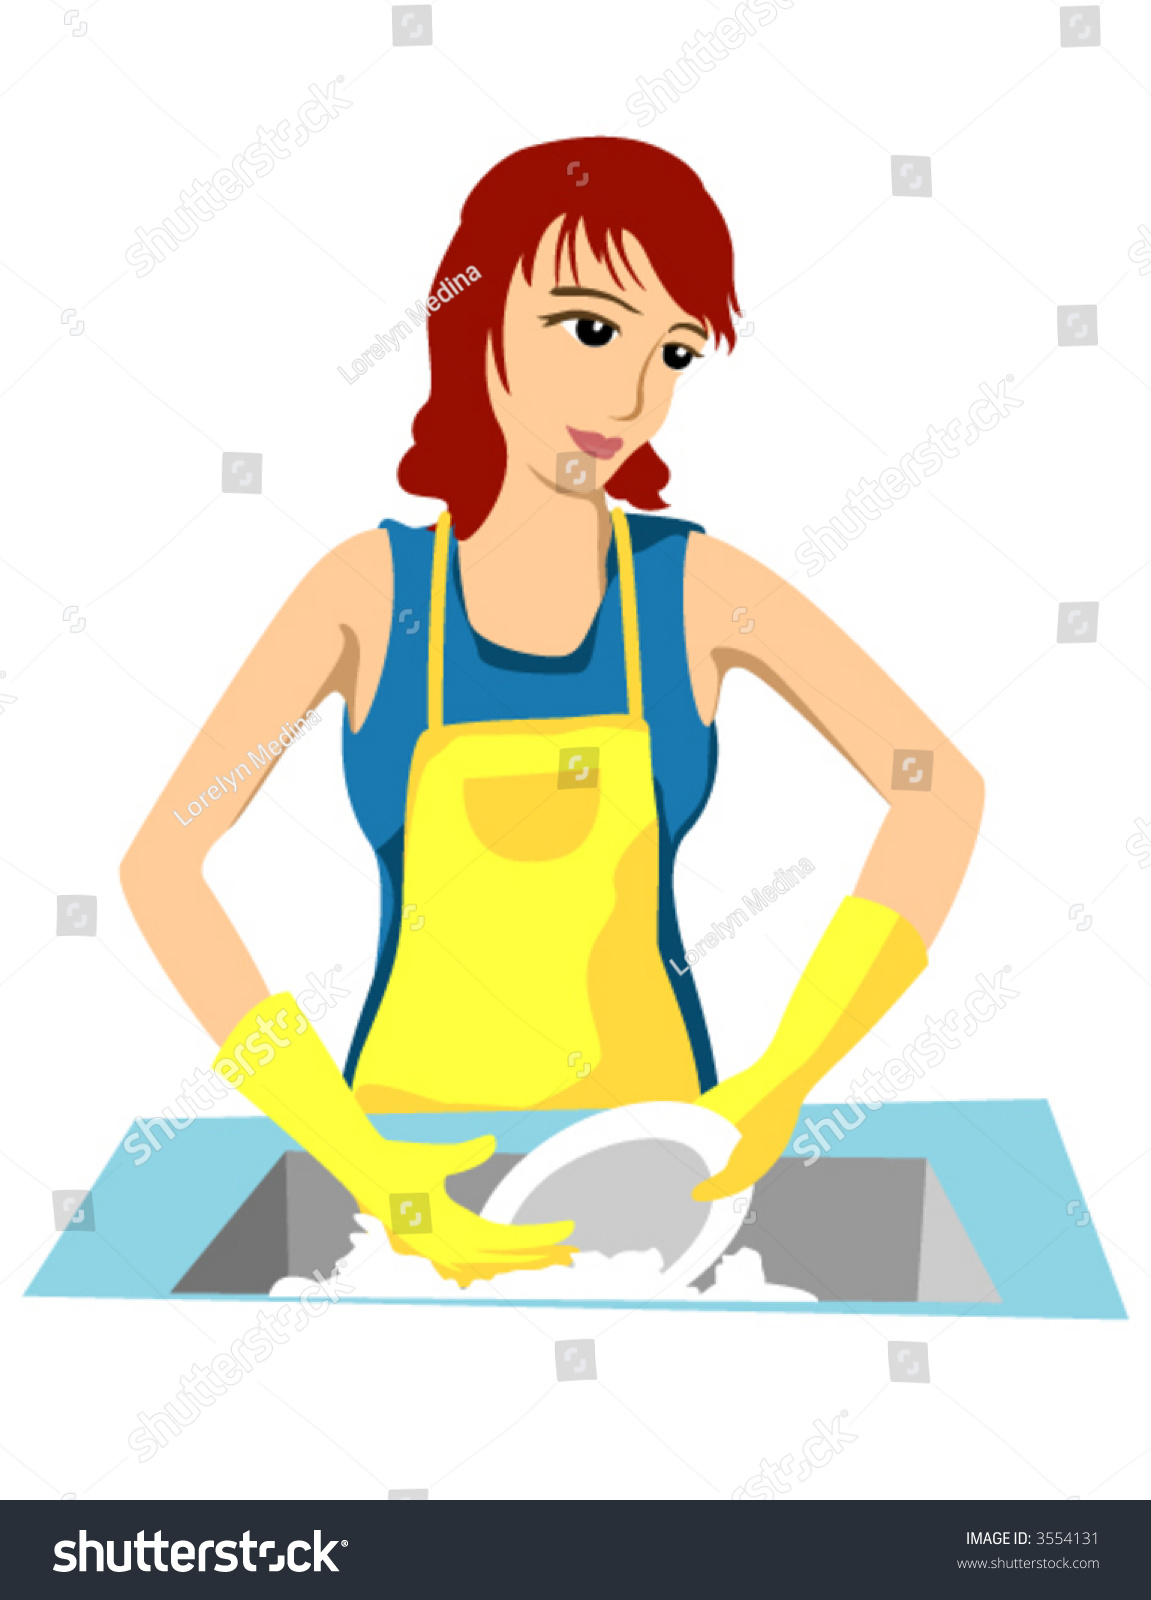 Washing Dishes Vector Stock Vector 3554131 - Shutterstock